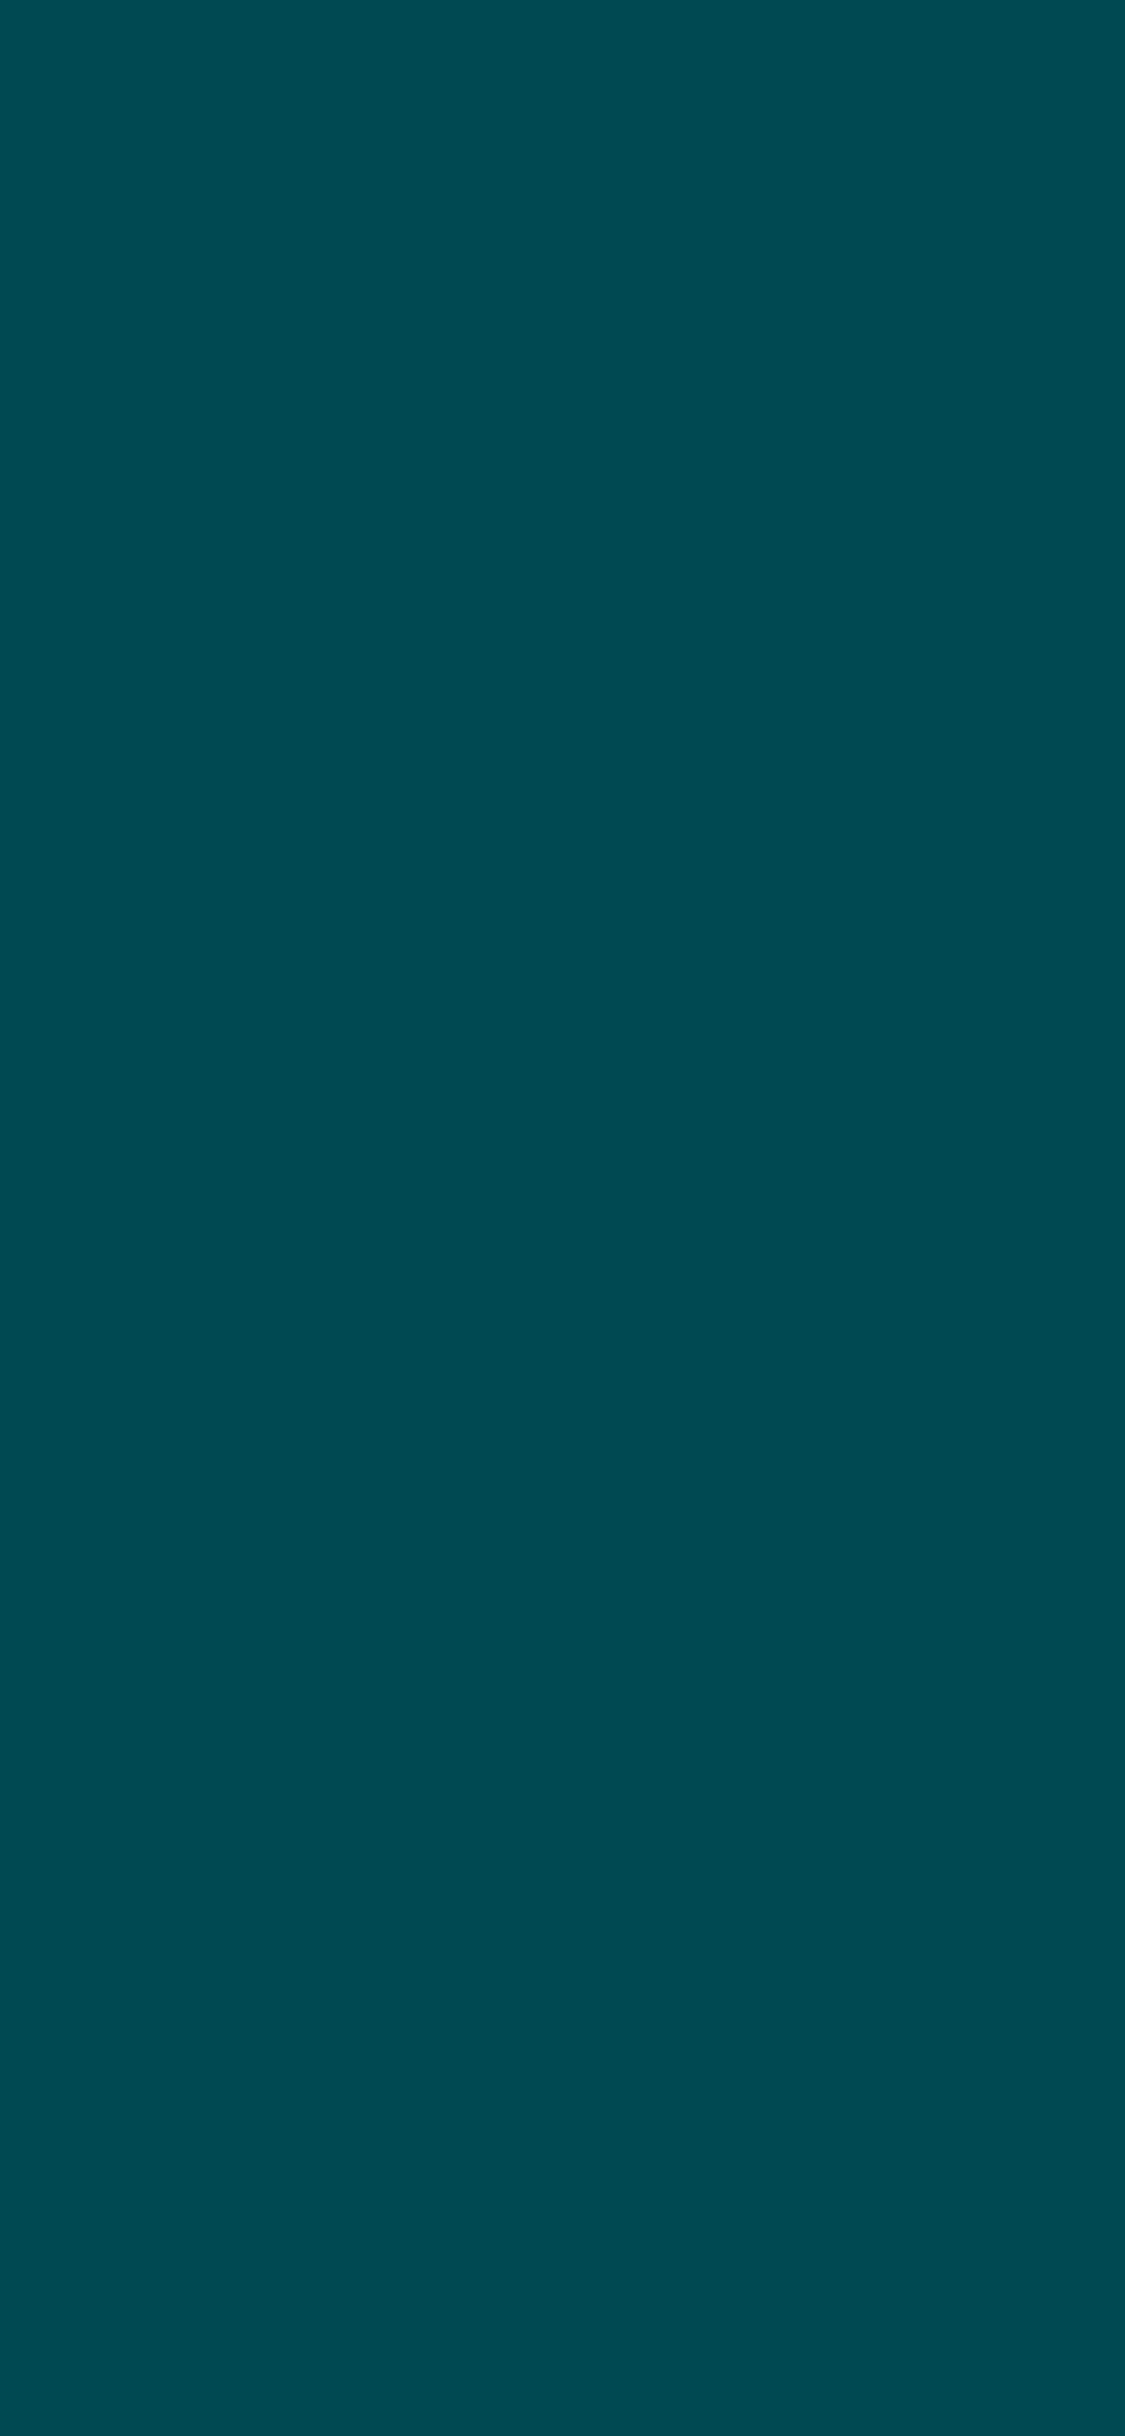 1125x2436 Midnight Green Solid Color Background